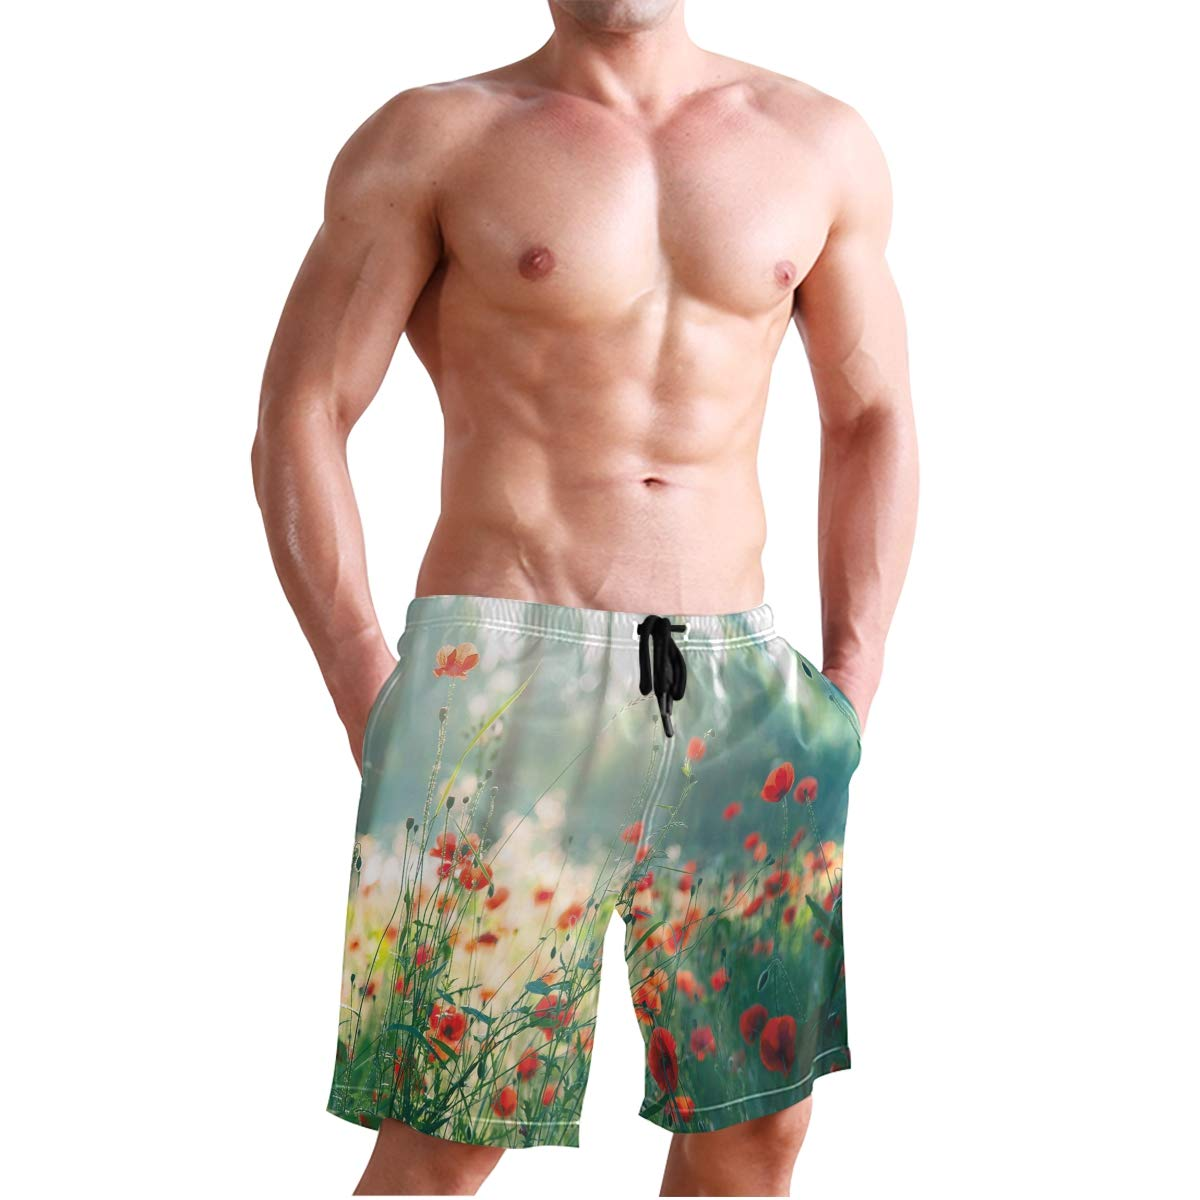 KVMV Watercolor Portrait of Woman with Artsy Floral Hairstyle Paint Splatters Quick Dry Beach Shorts